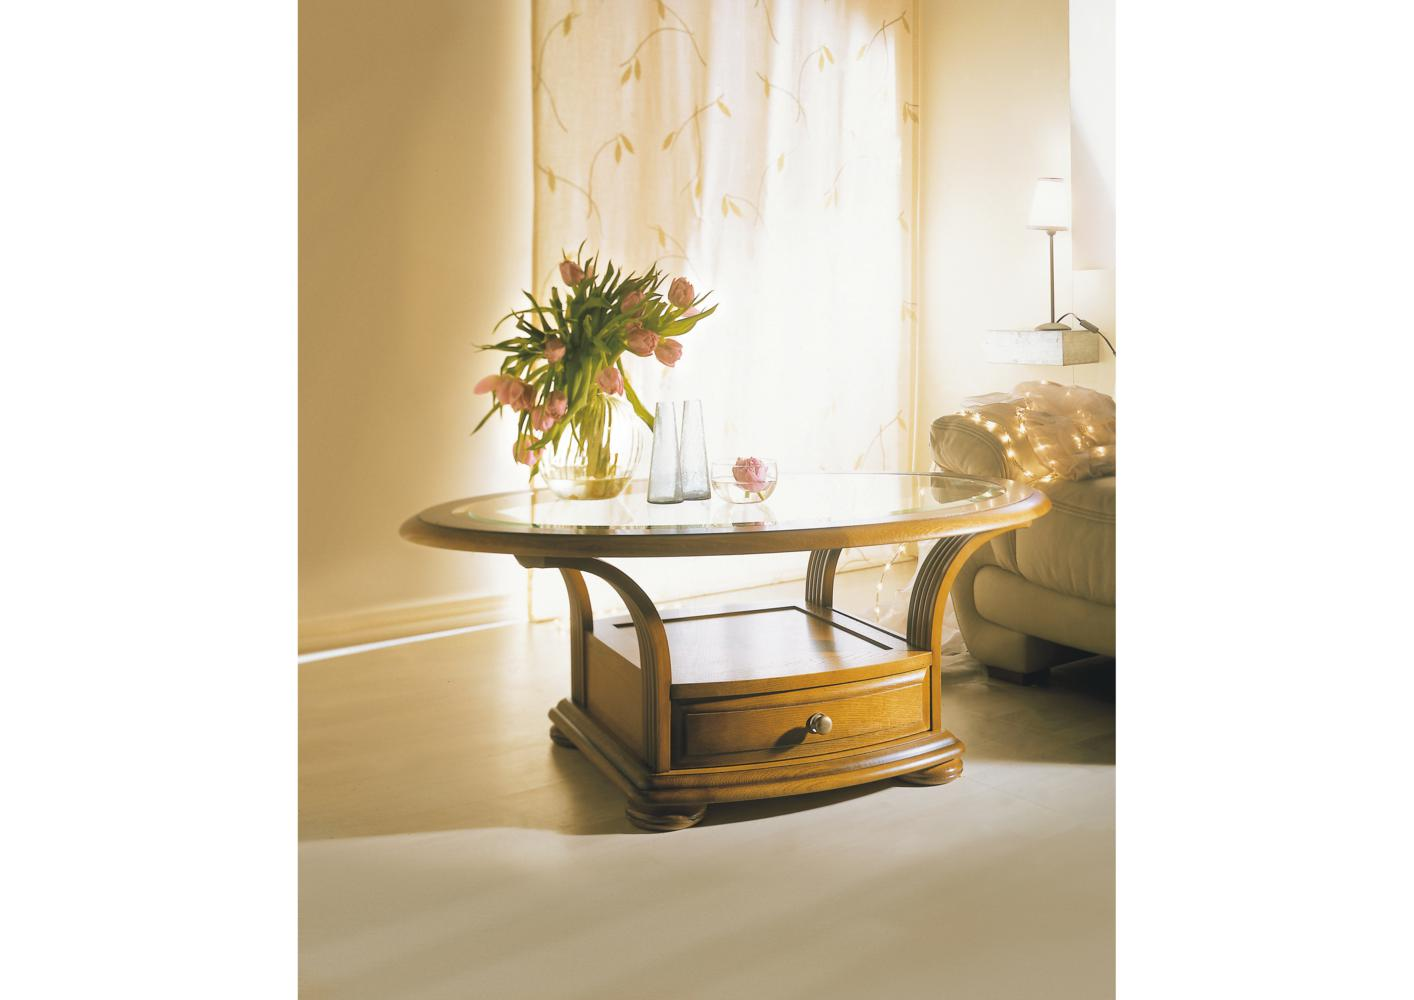 Table basse ovale dessus verre tbc180 pictures to pin on pinterest - Table basse dessus verre ...